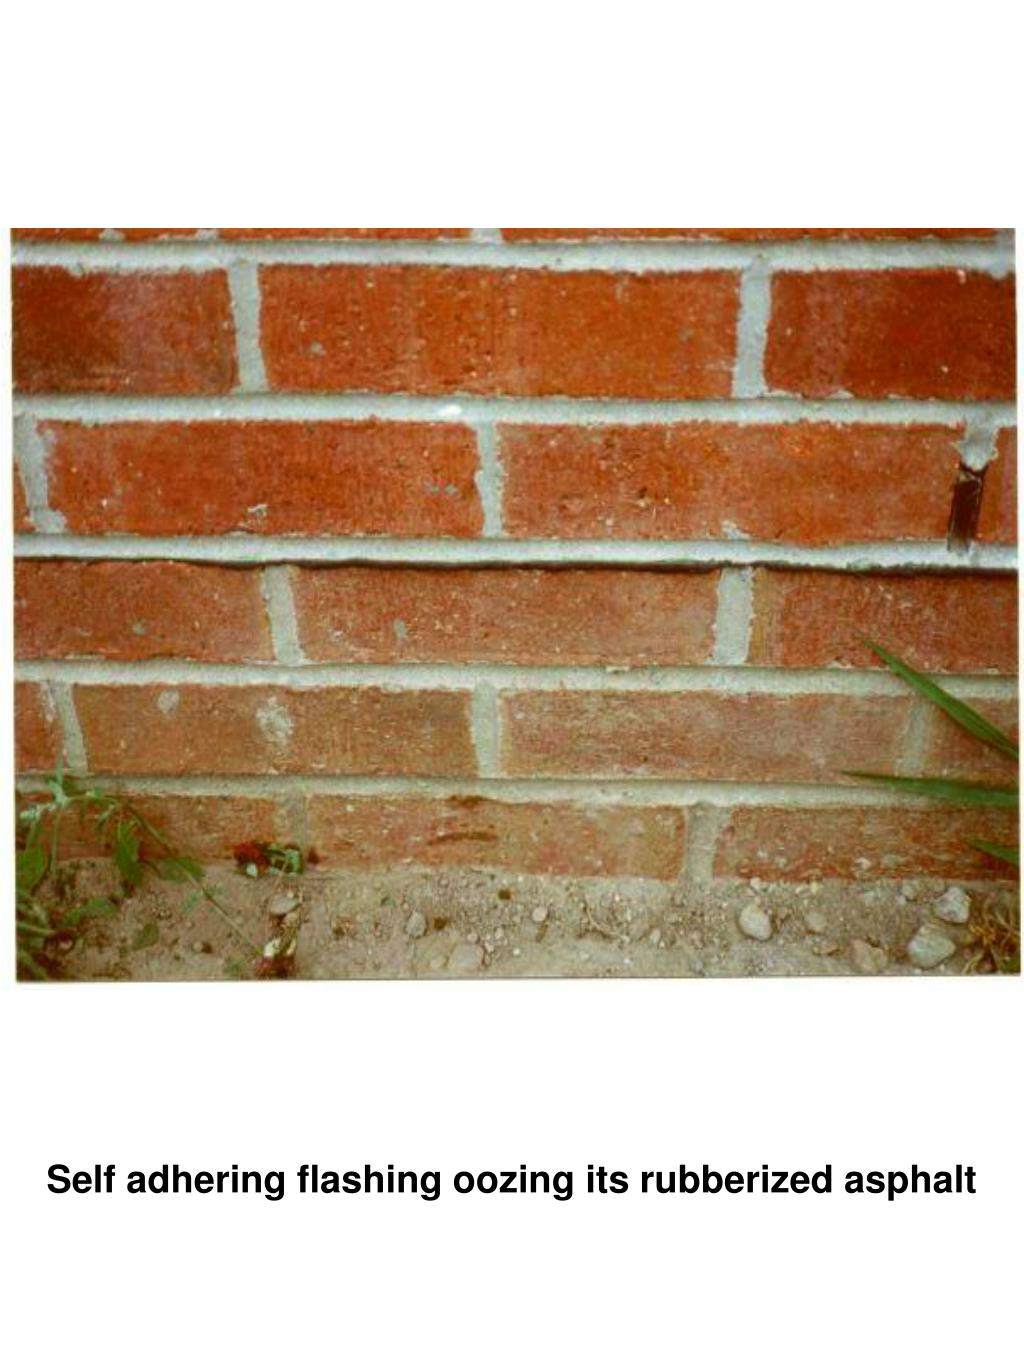 Self adhering flashing oozing its rubberized asphalt